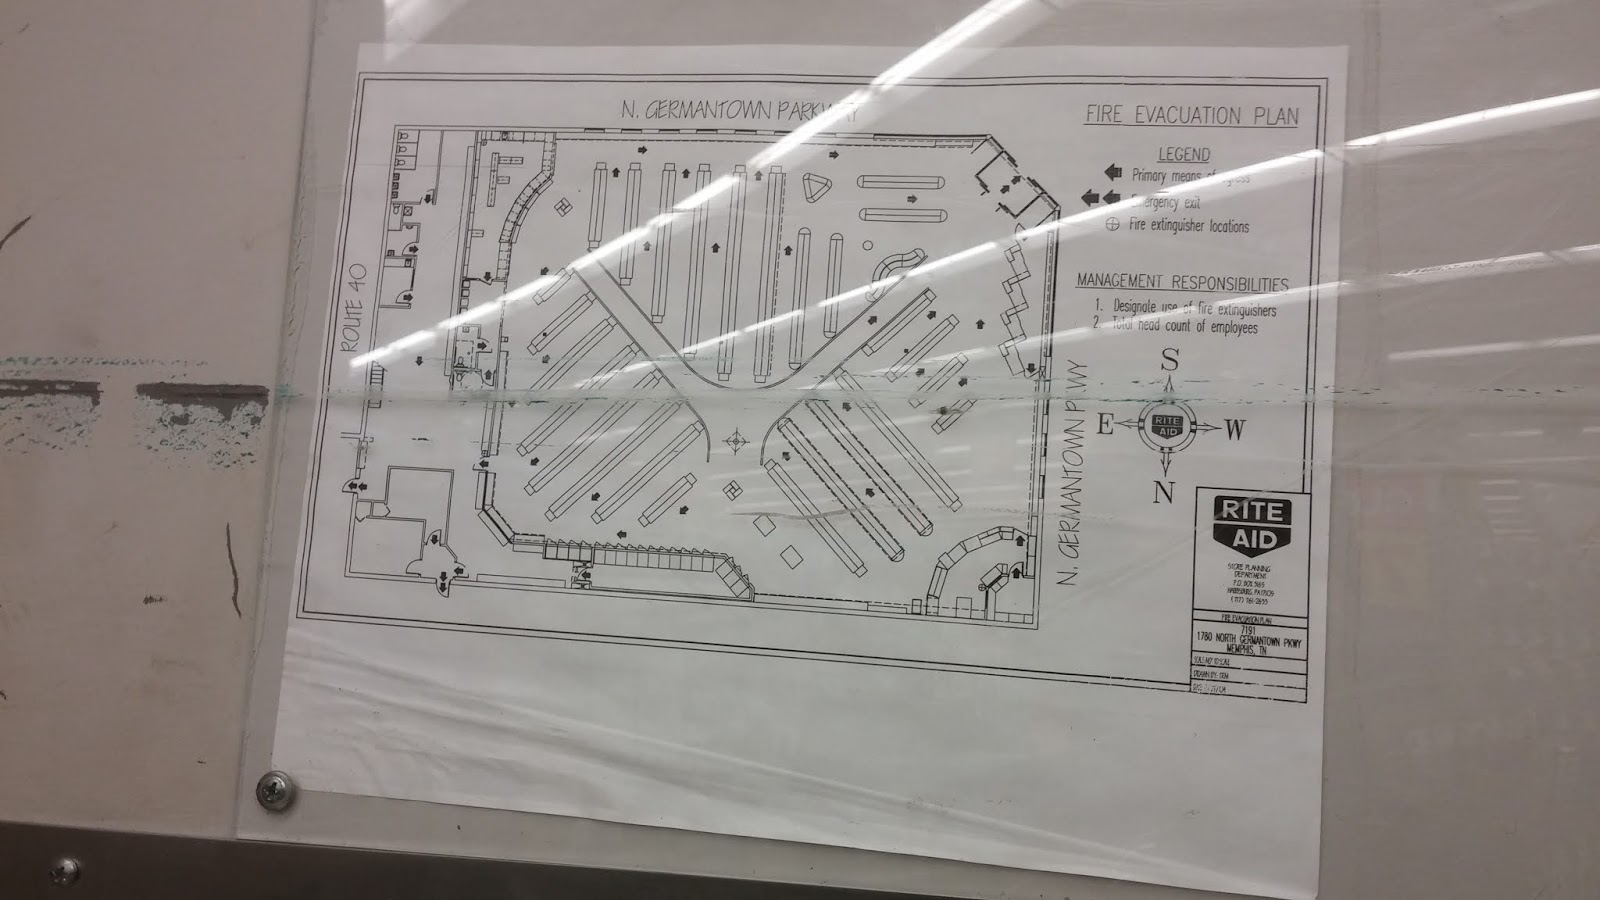 hight resolution of here s the floorplan of this cordova rite aid as seen posted to one of the emergency exit doors the date listed for this schematic is sometime in 2004